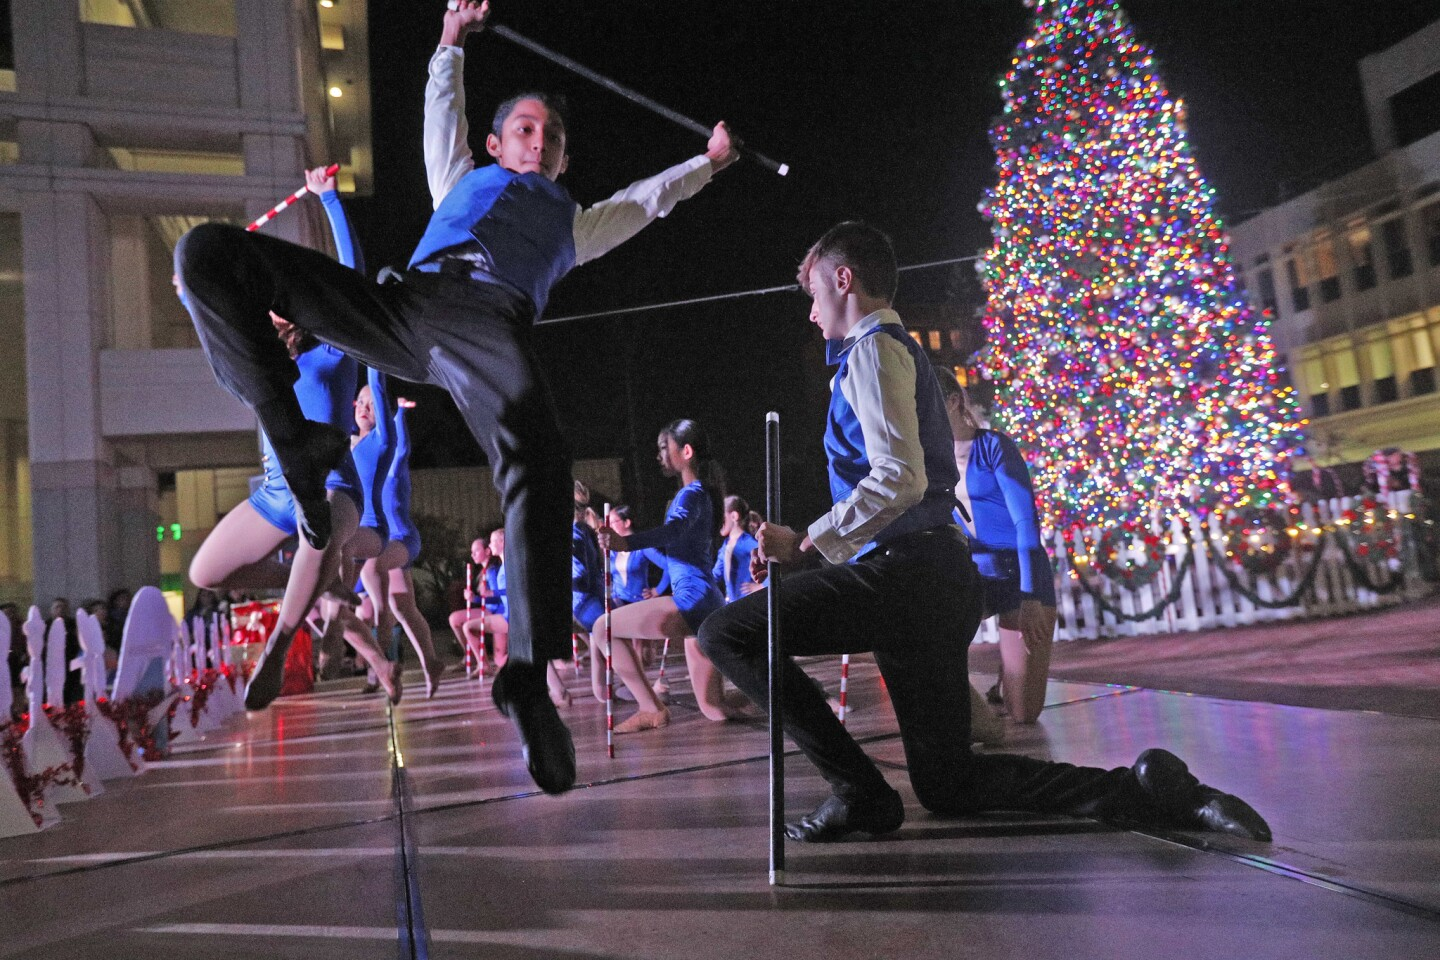 Photo Gallery: Glendale Holiday Tree Lighting Ceremony and Cram-A-Classic Toy Drive